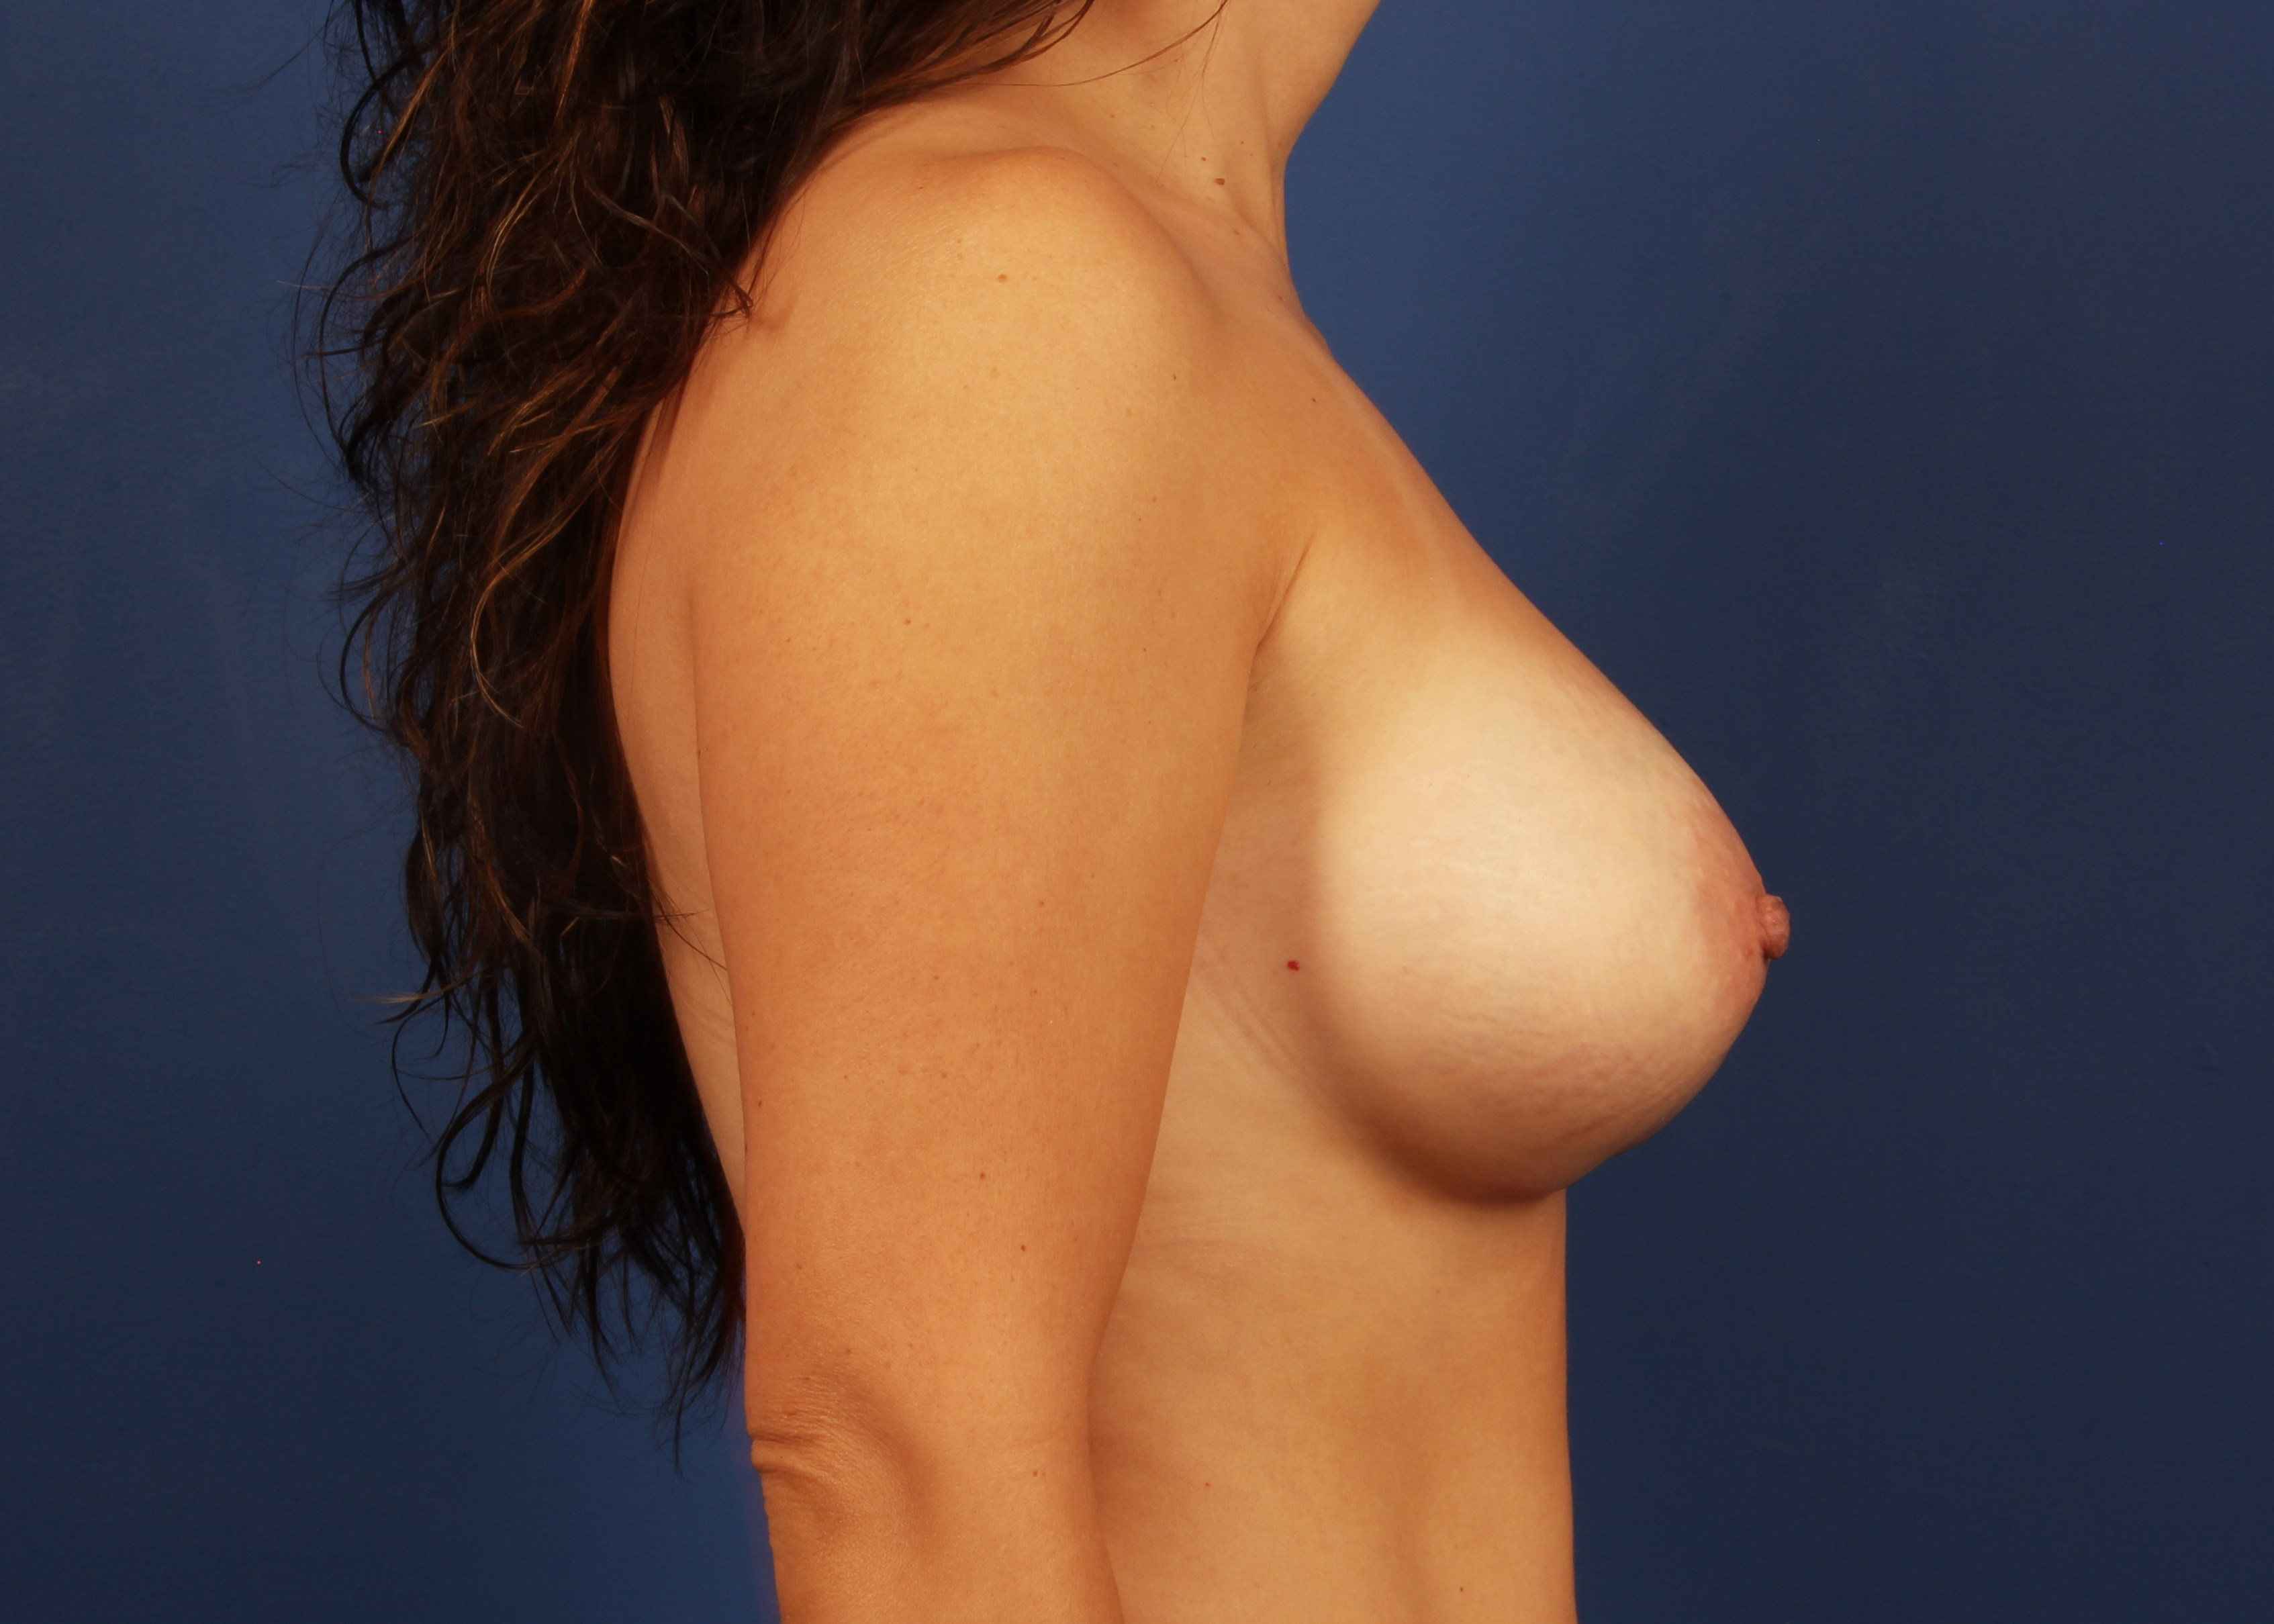 after breast implants Right View - Right View